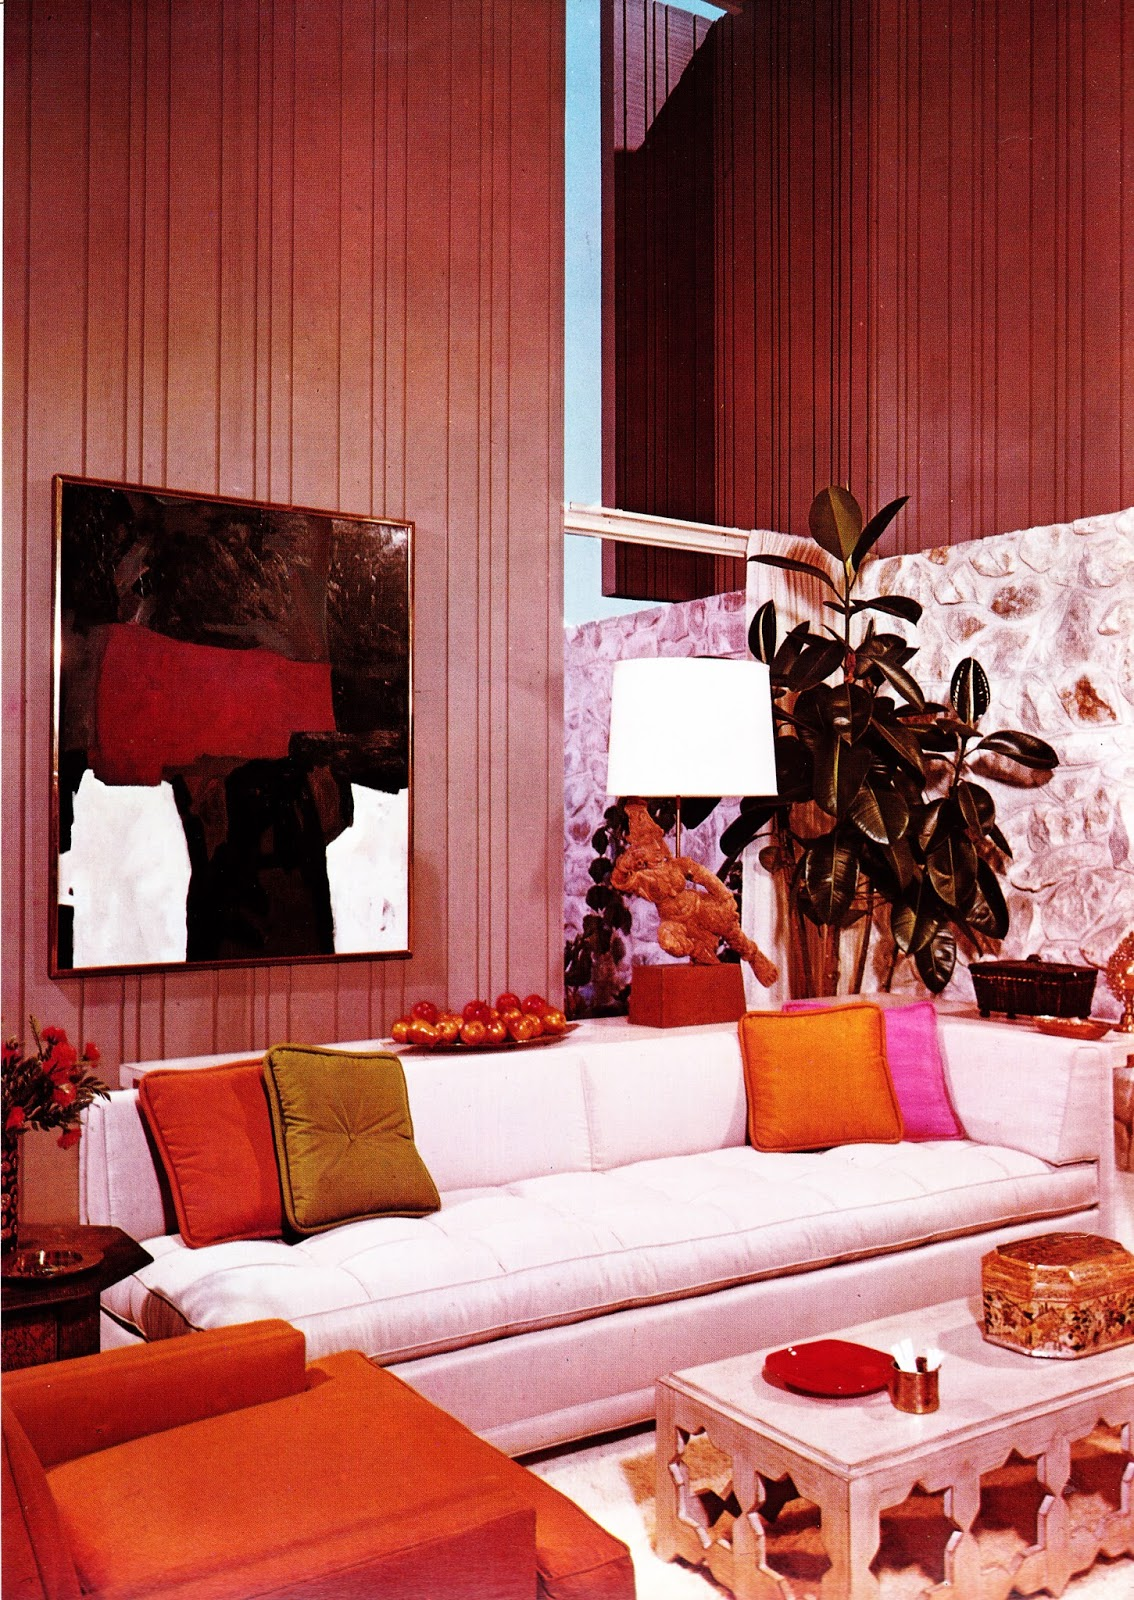 Interior 1960s Interior Décor The Decade Of Psychedelia Gave Rise